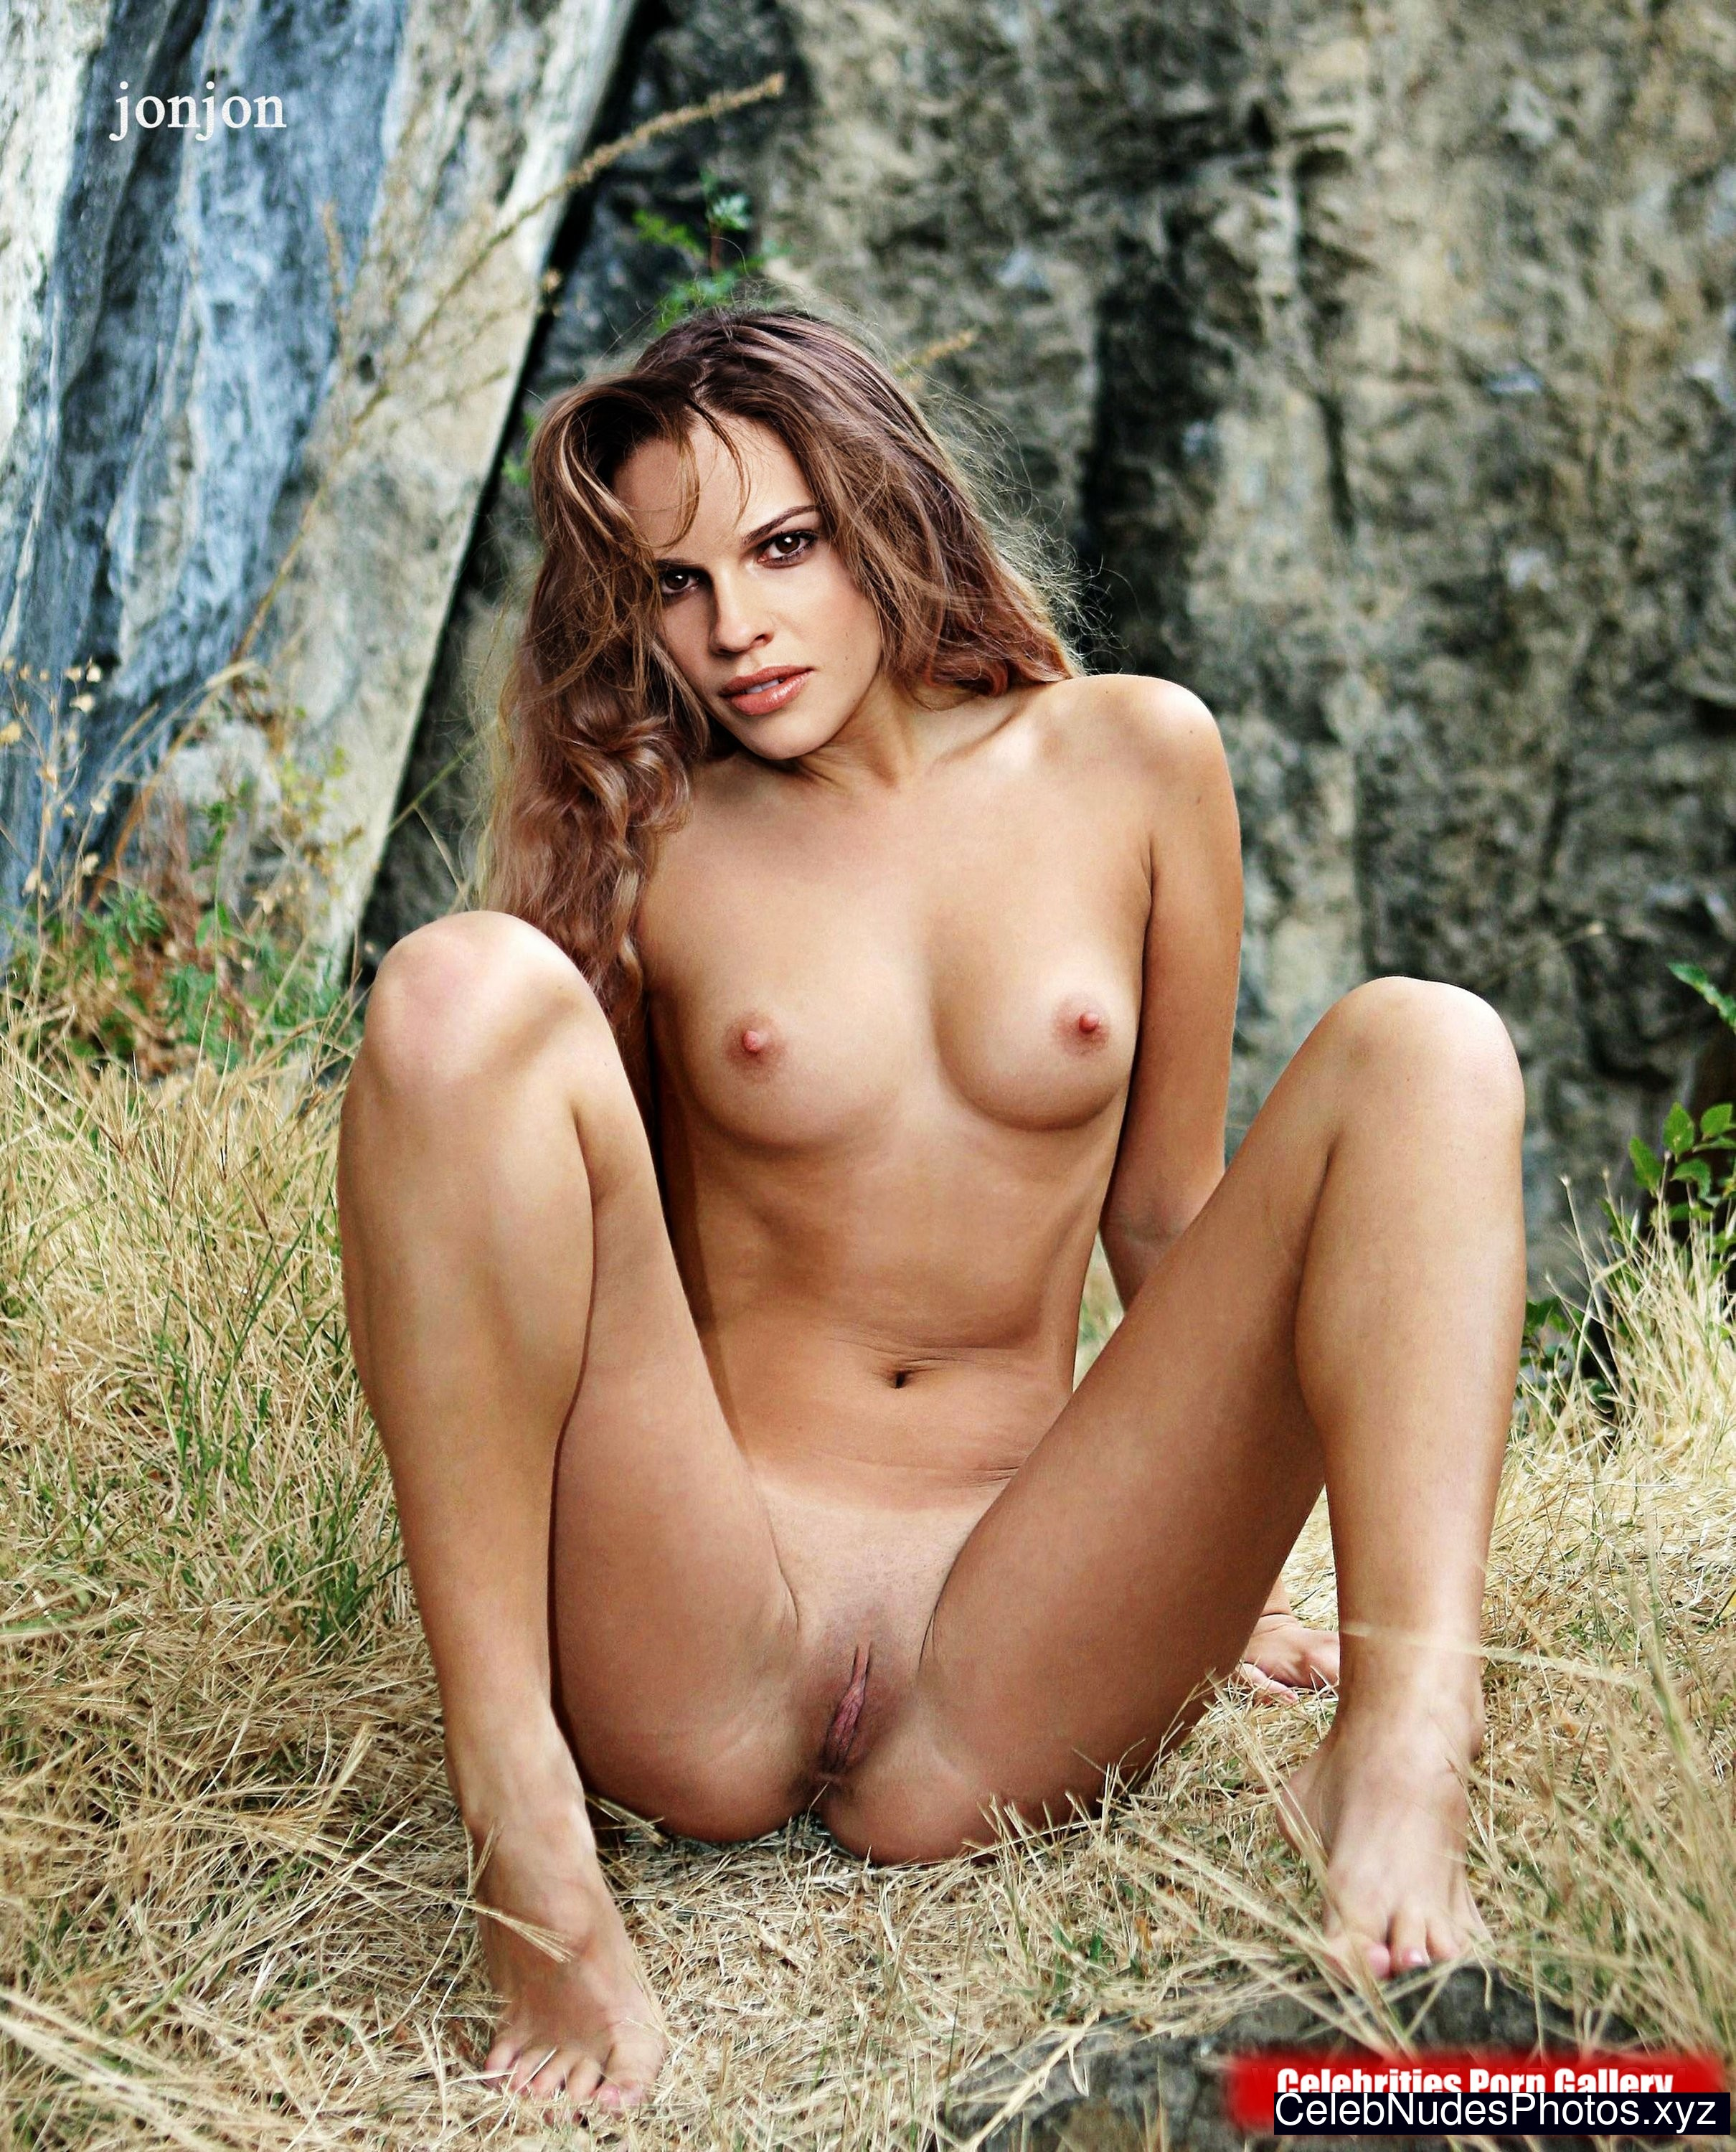 Hilary Swank celebrity naked